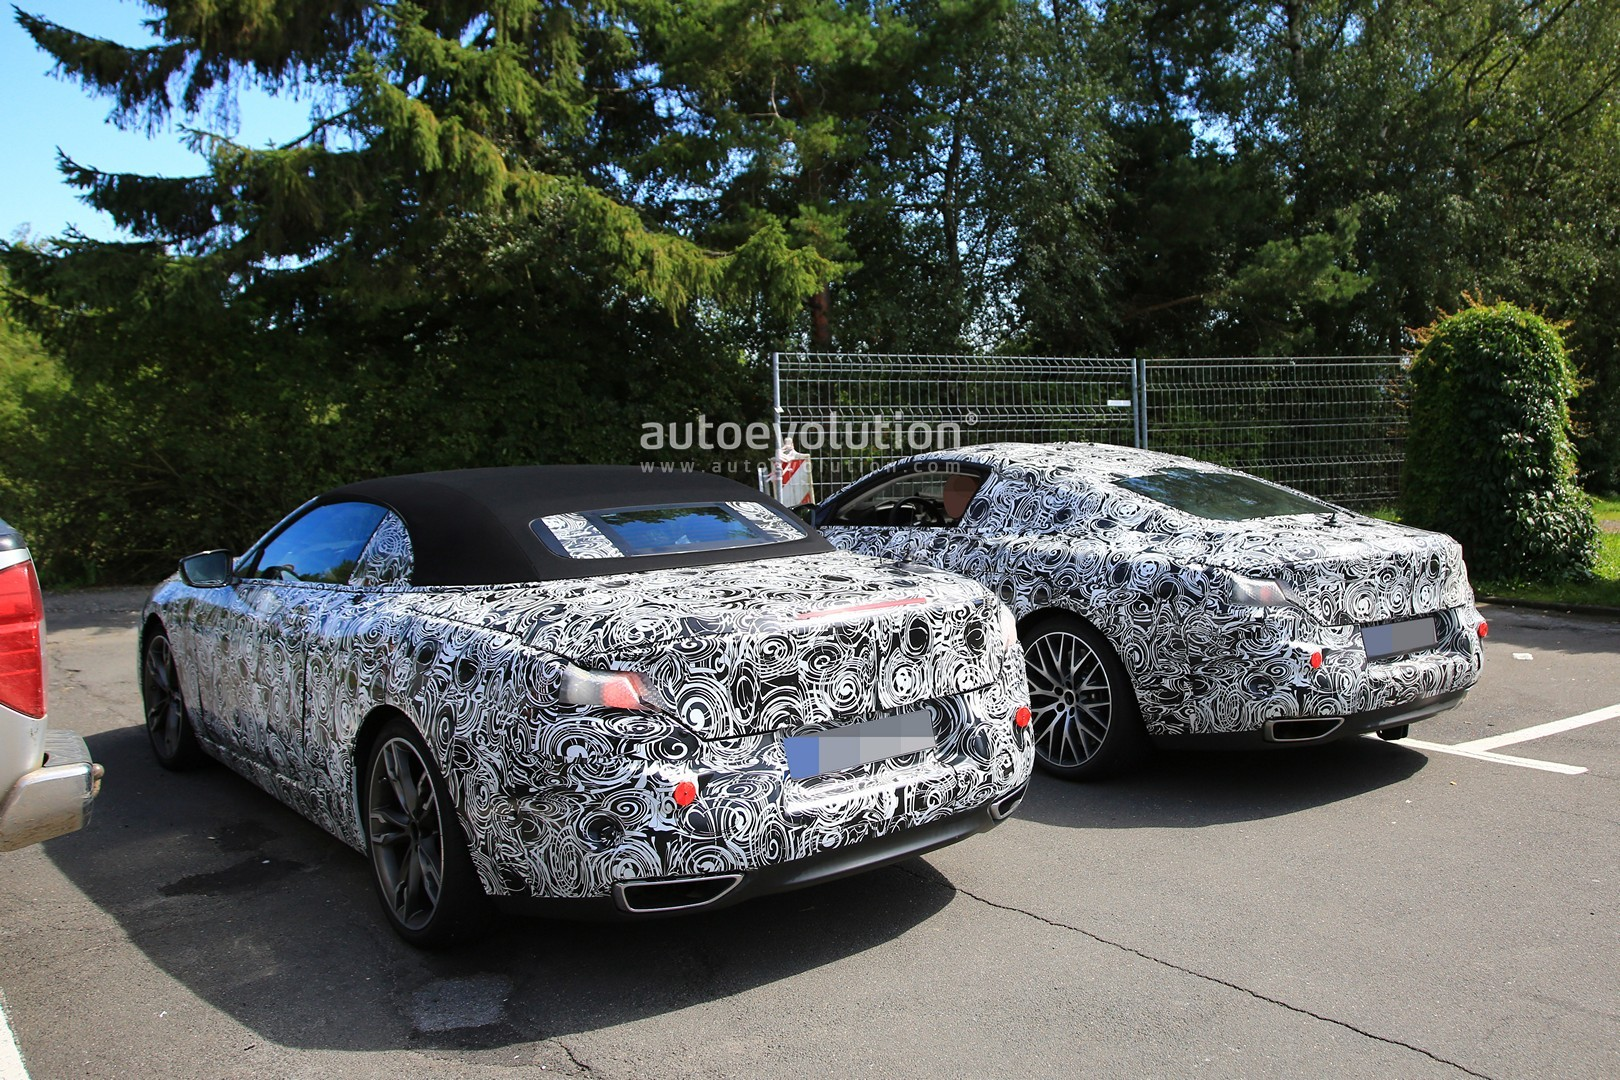 BMW 8 Series Coupe And Cabriolet Spied Side By